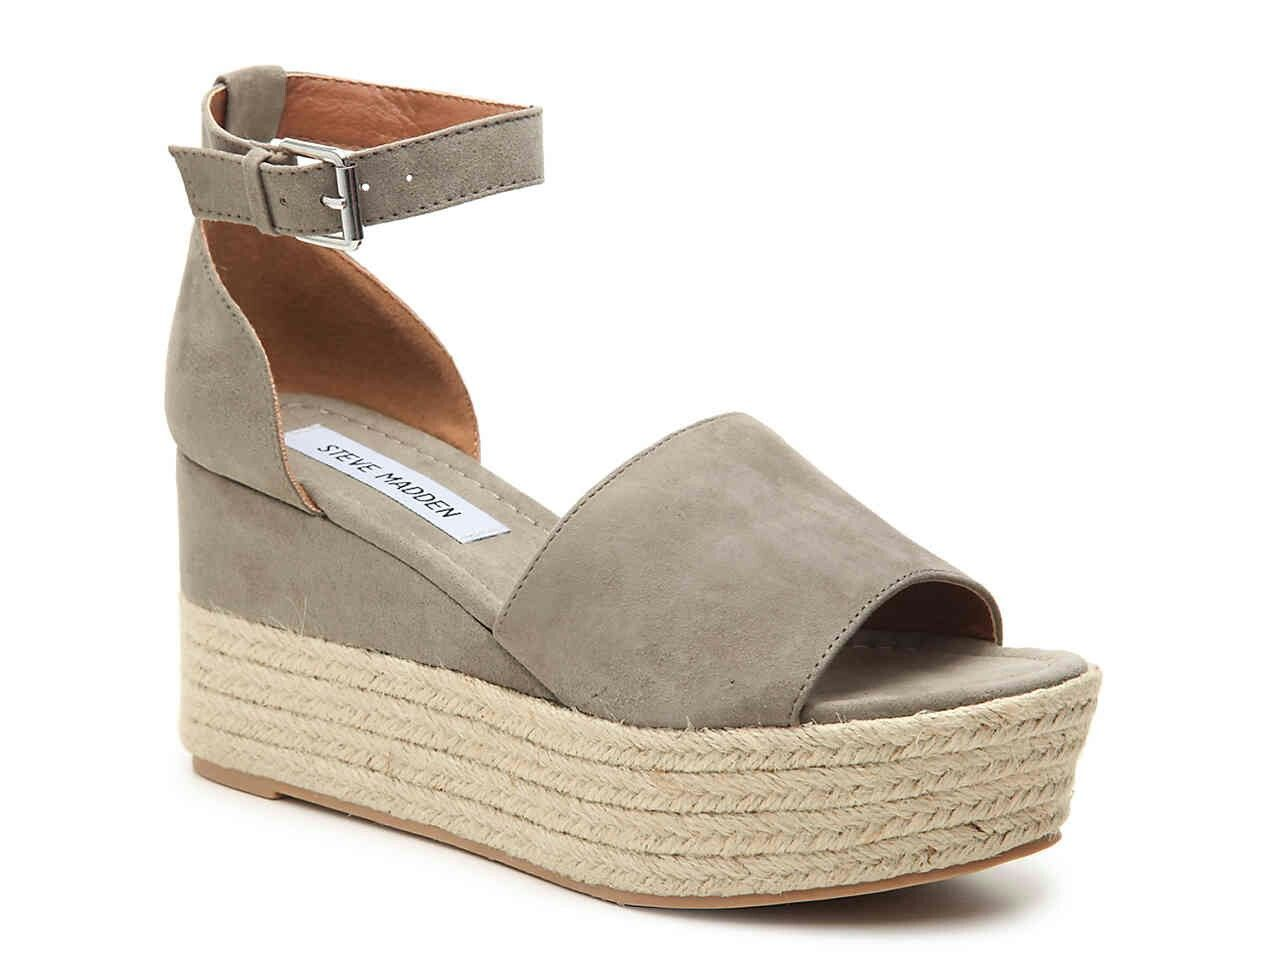 c2e23ede197 STEVE MADDEN APOLO WEDGE SANDAL-TAUPE-$59.99 | ESPADRILLES TO DIE ...